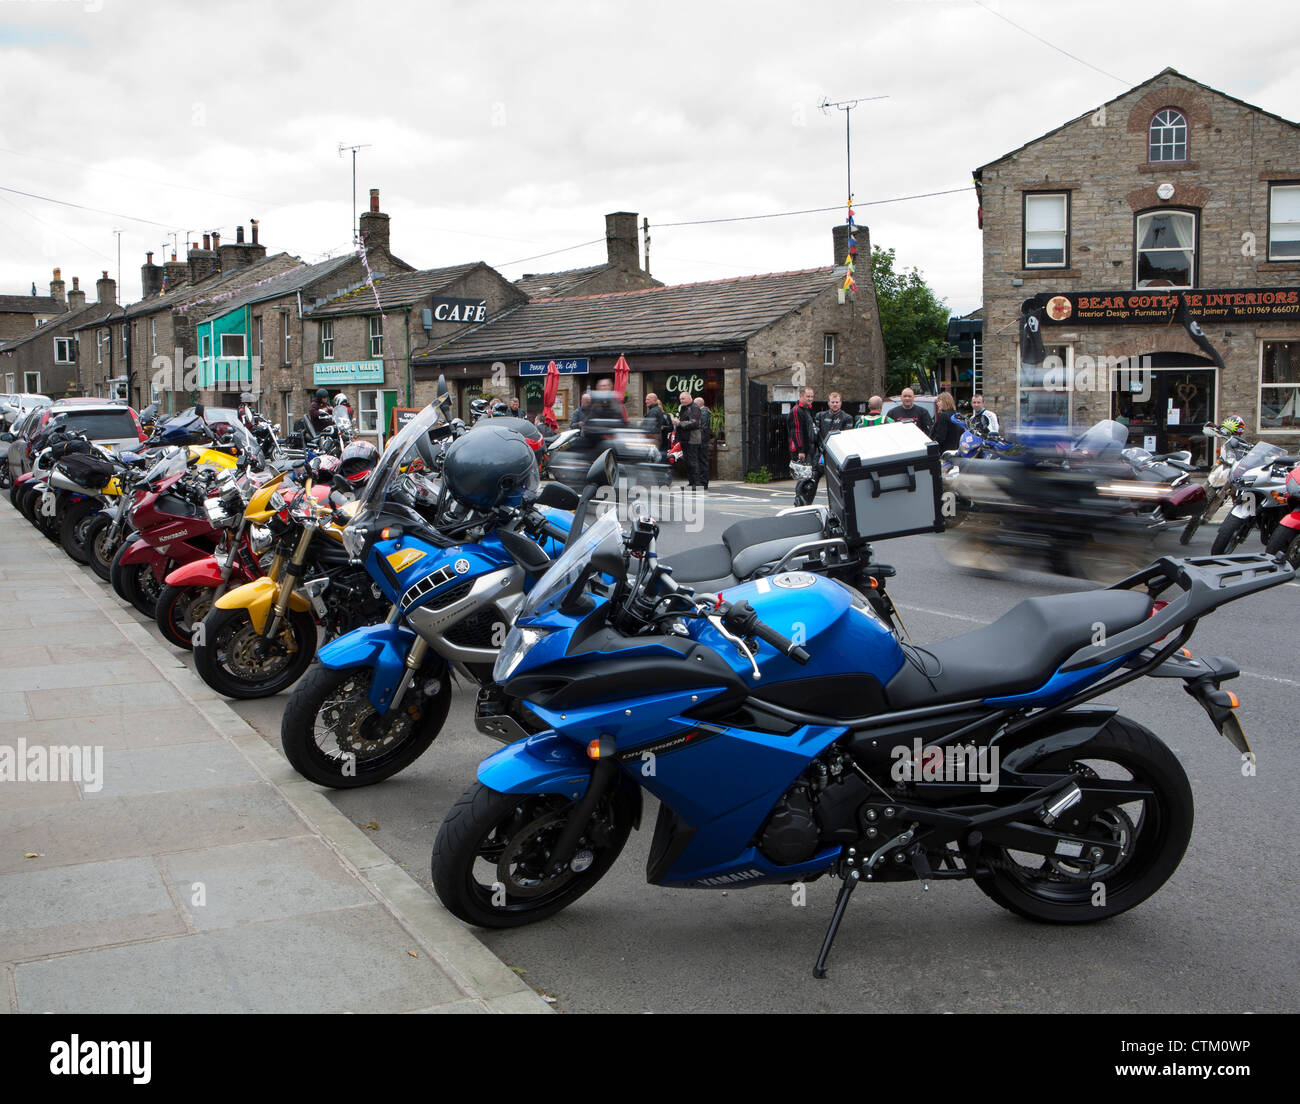 High Street in Hawes, North Yorkshire Dales National Park, UK - Stock Image